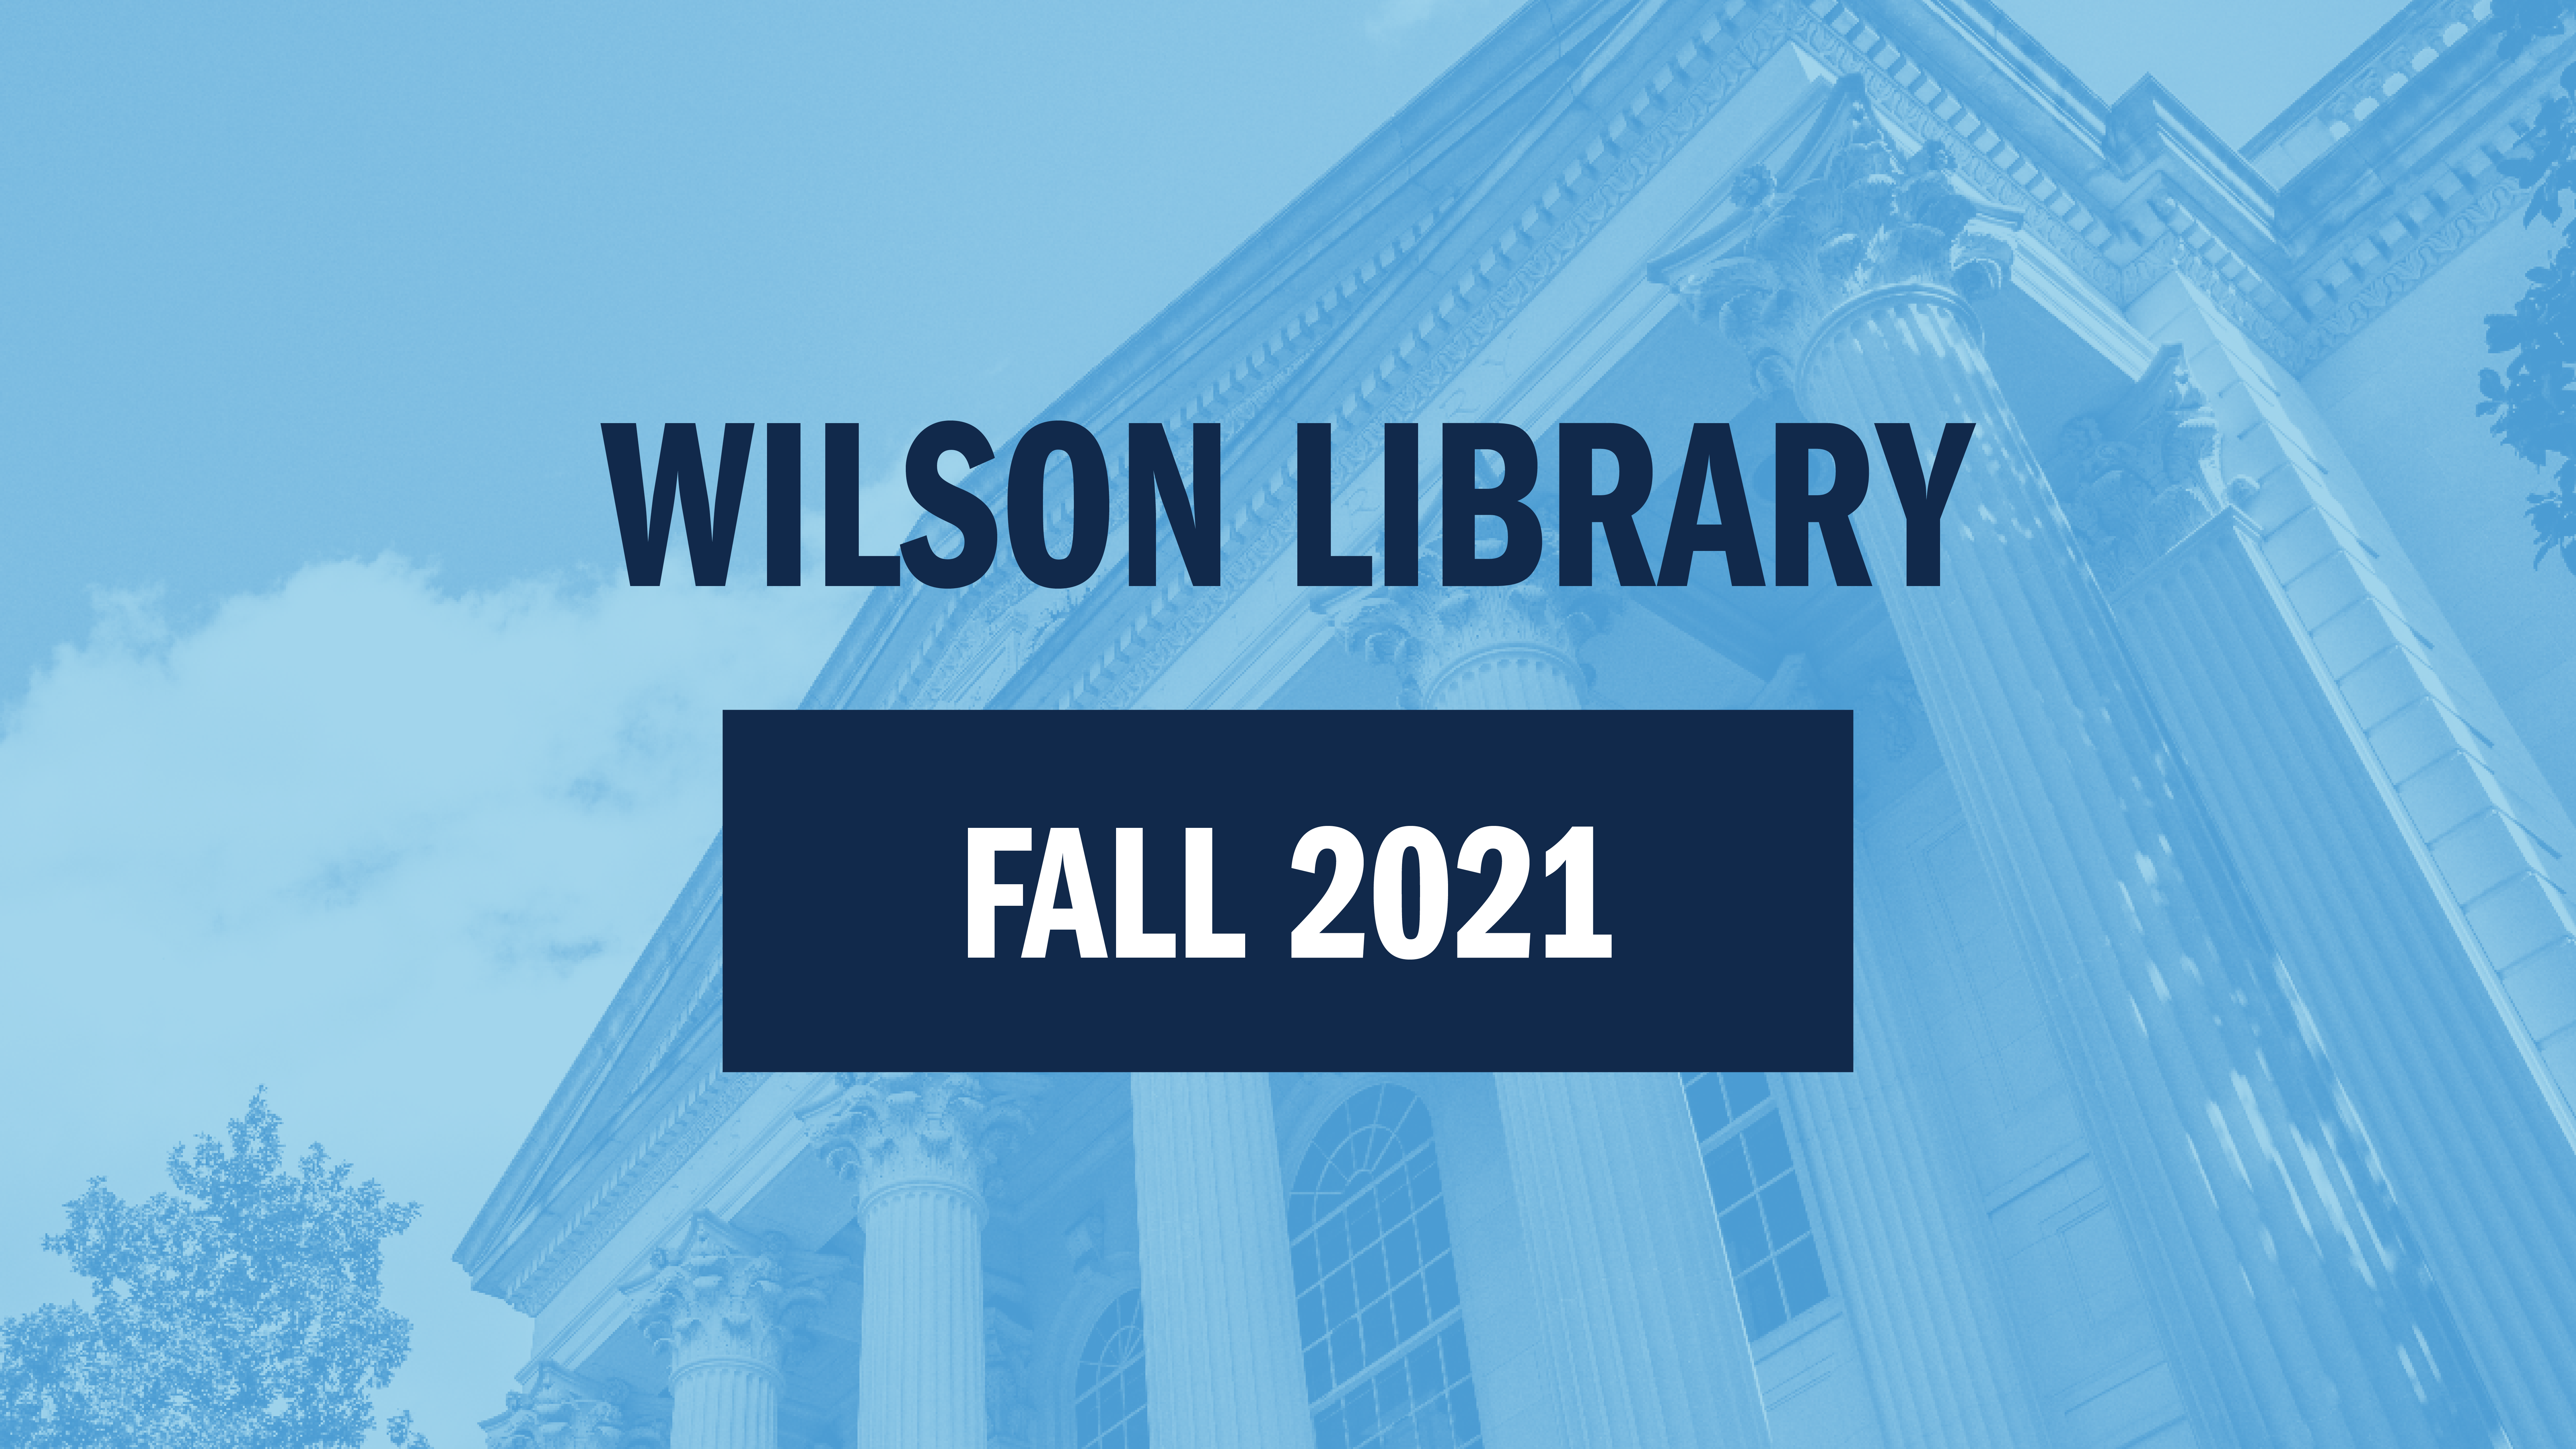 Wilson Library Welcomes You to the 2021-2022 Academic Year